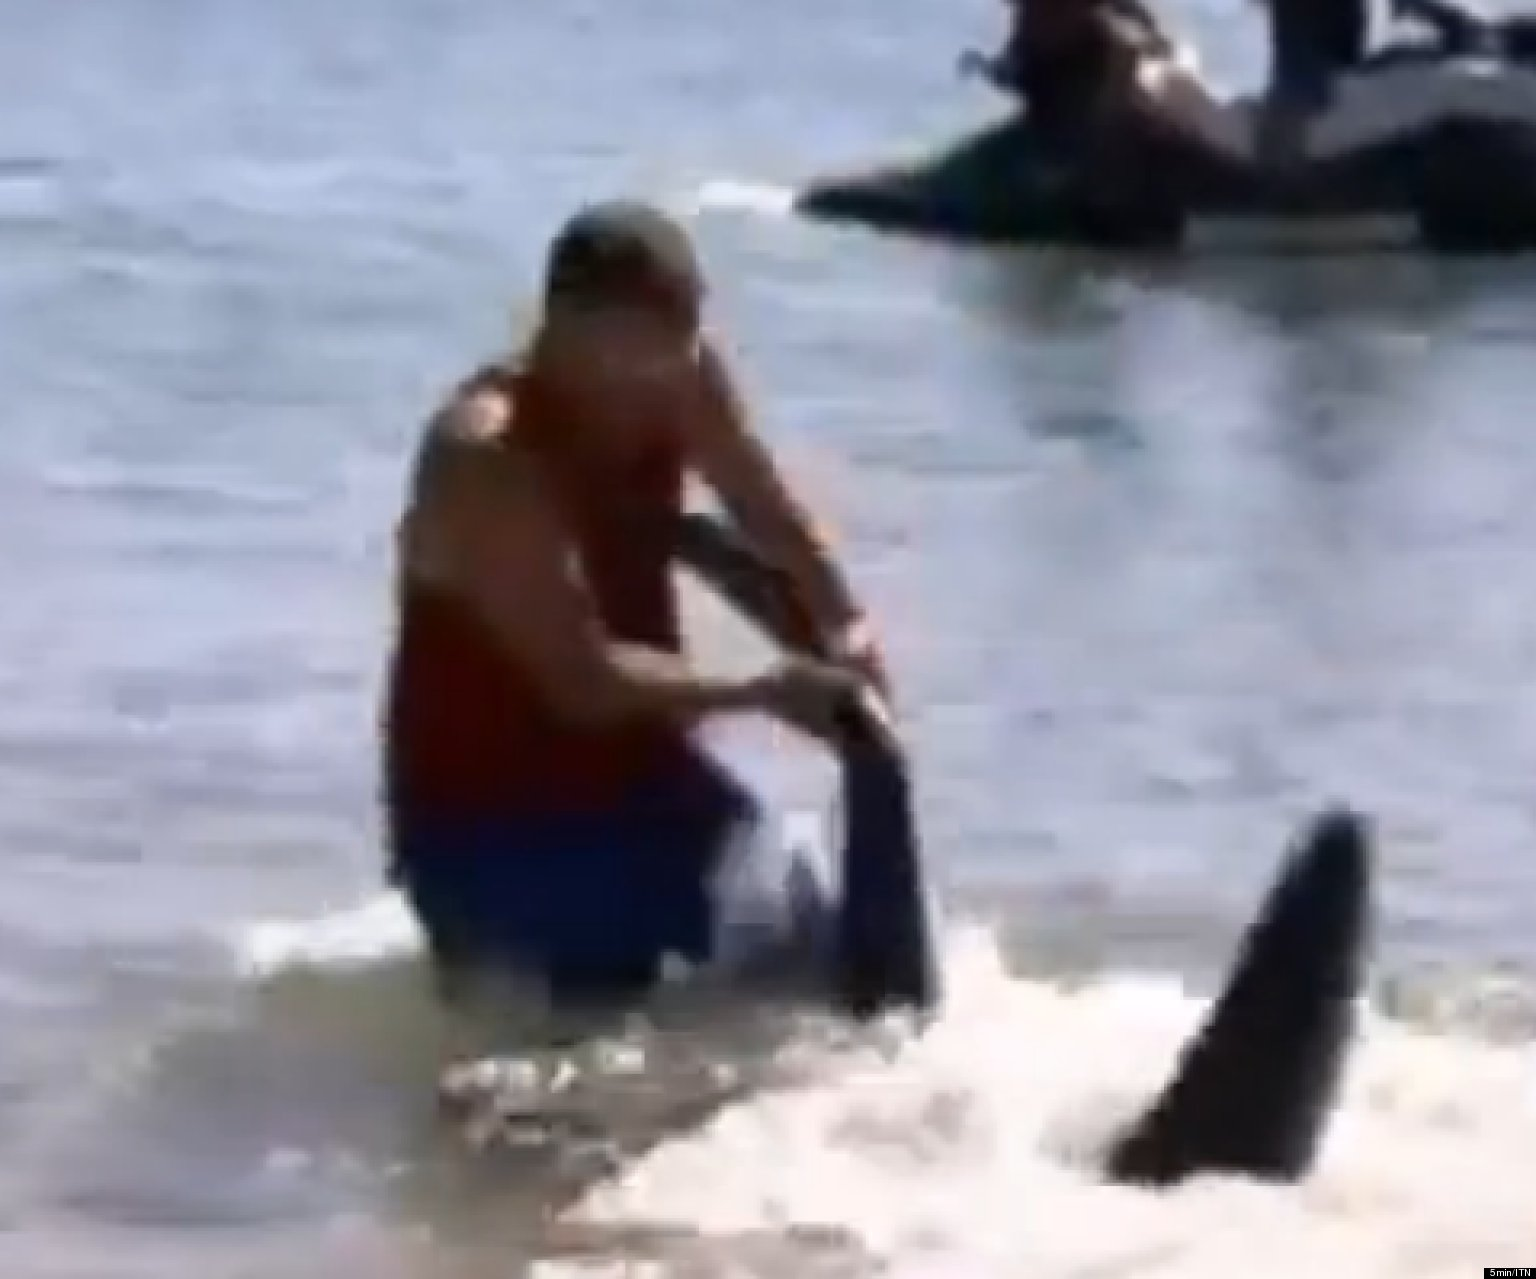 paul marshallsea fired for wrestling shark in australia